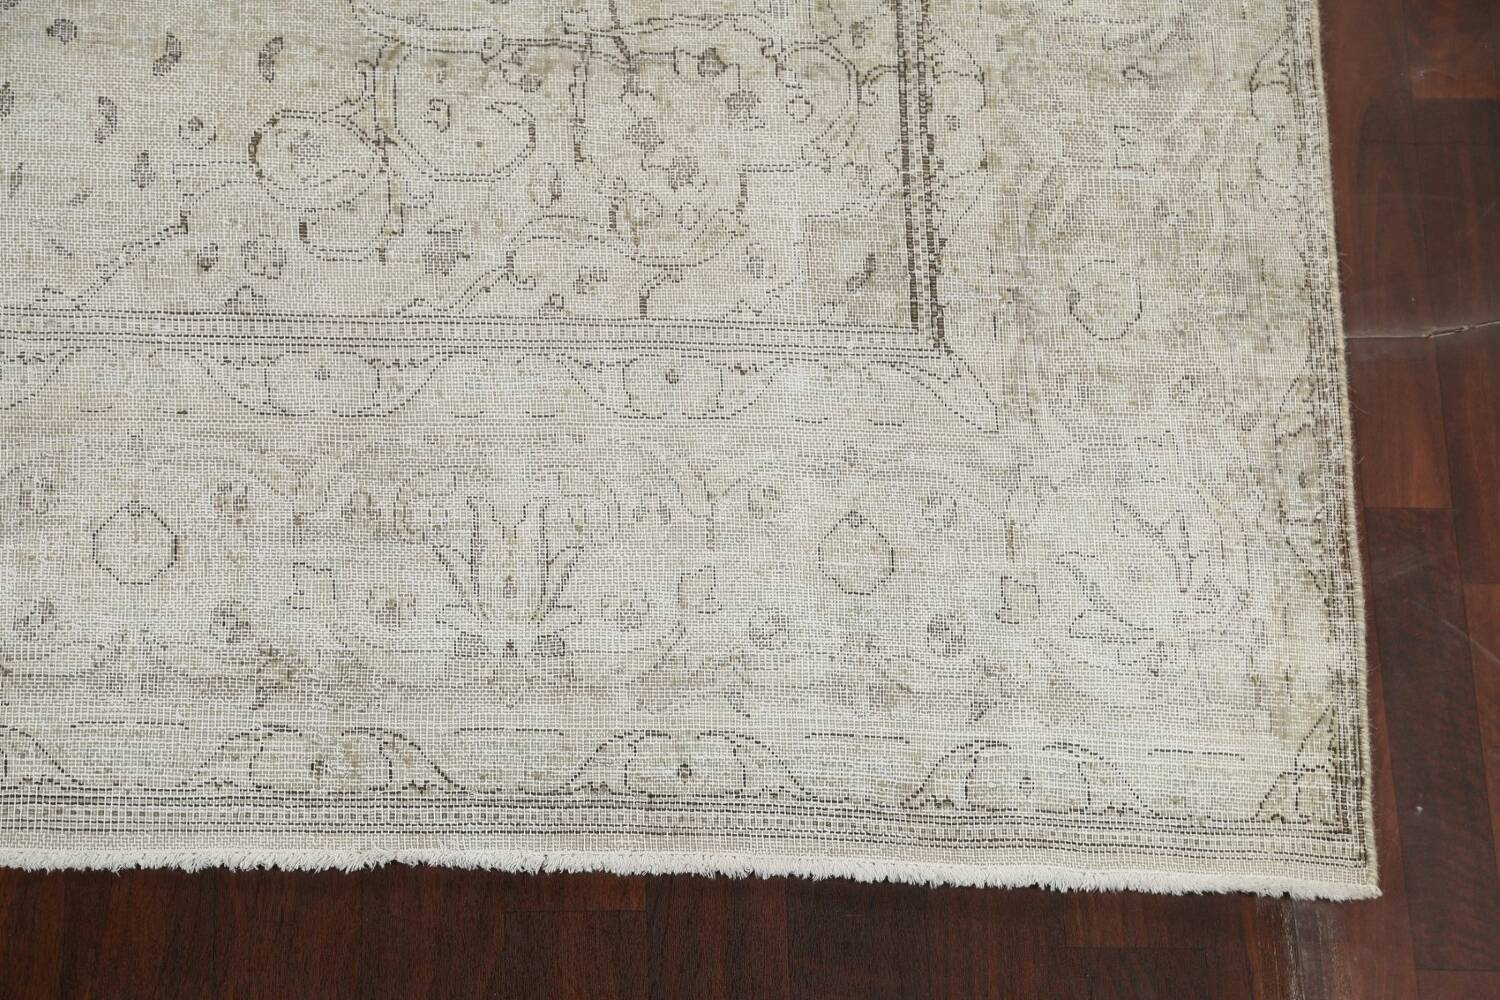 Muted Distressed Floral Tabriz Persian Area Rug 10x13 image 5